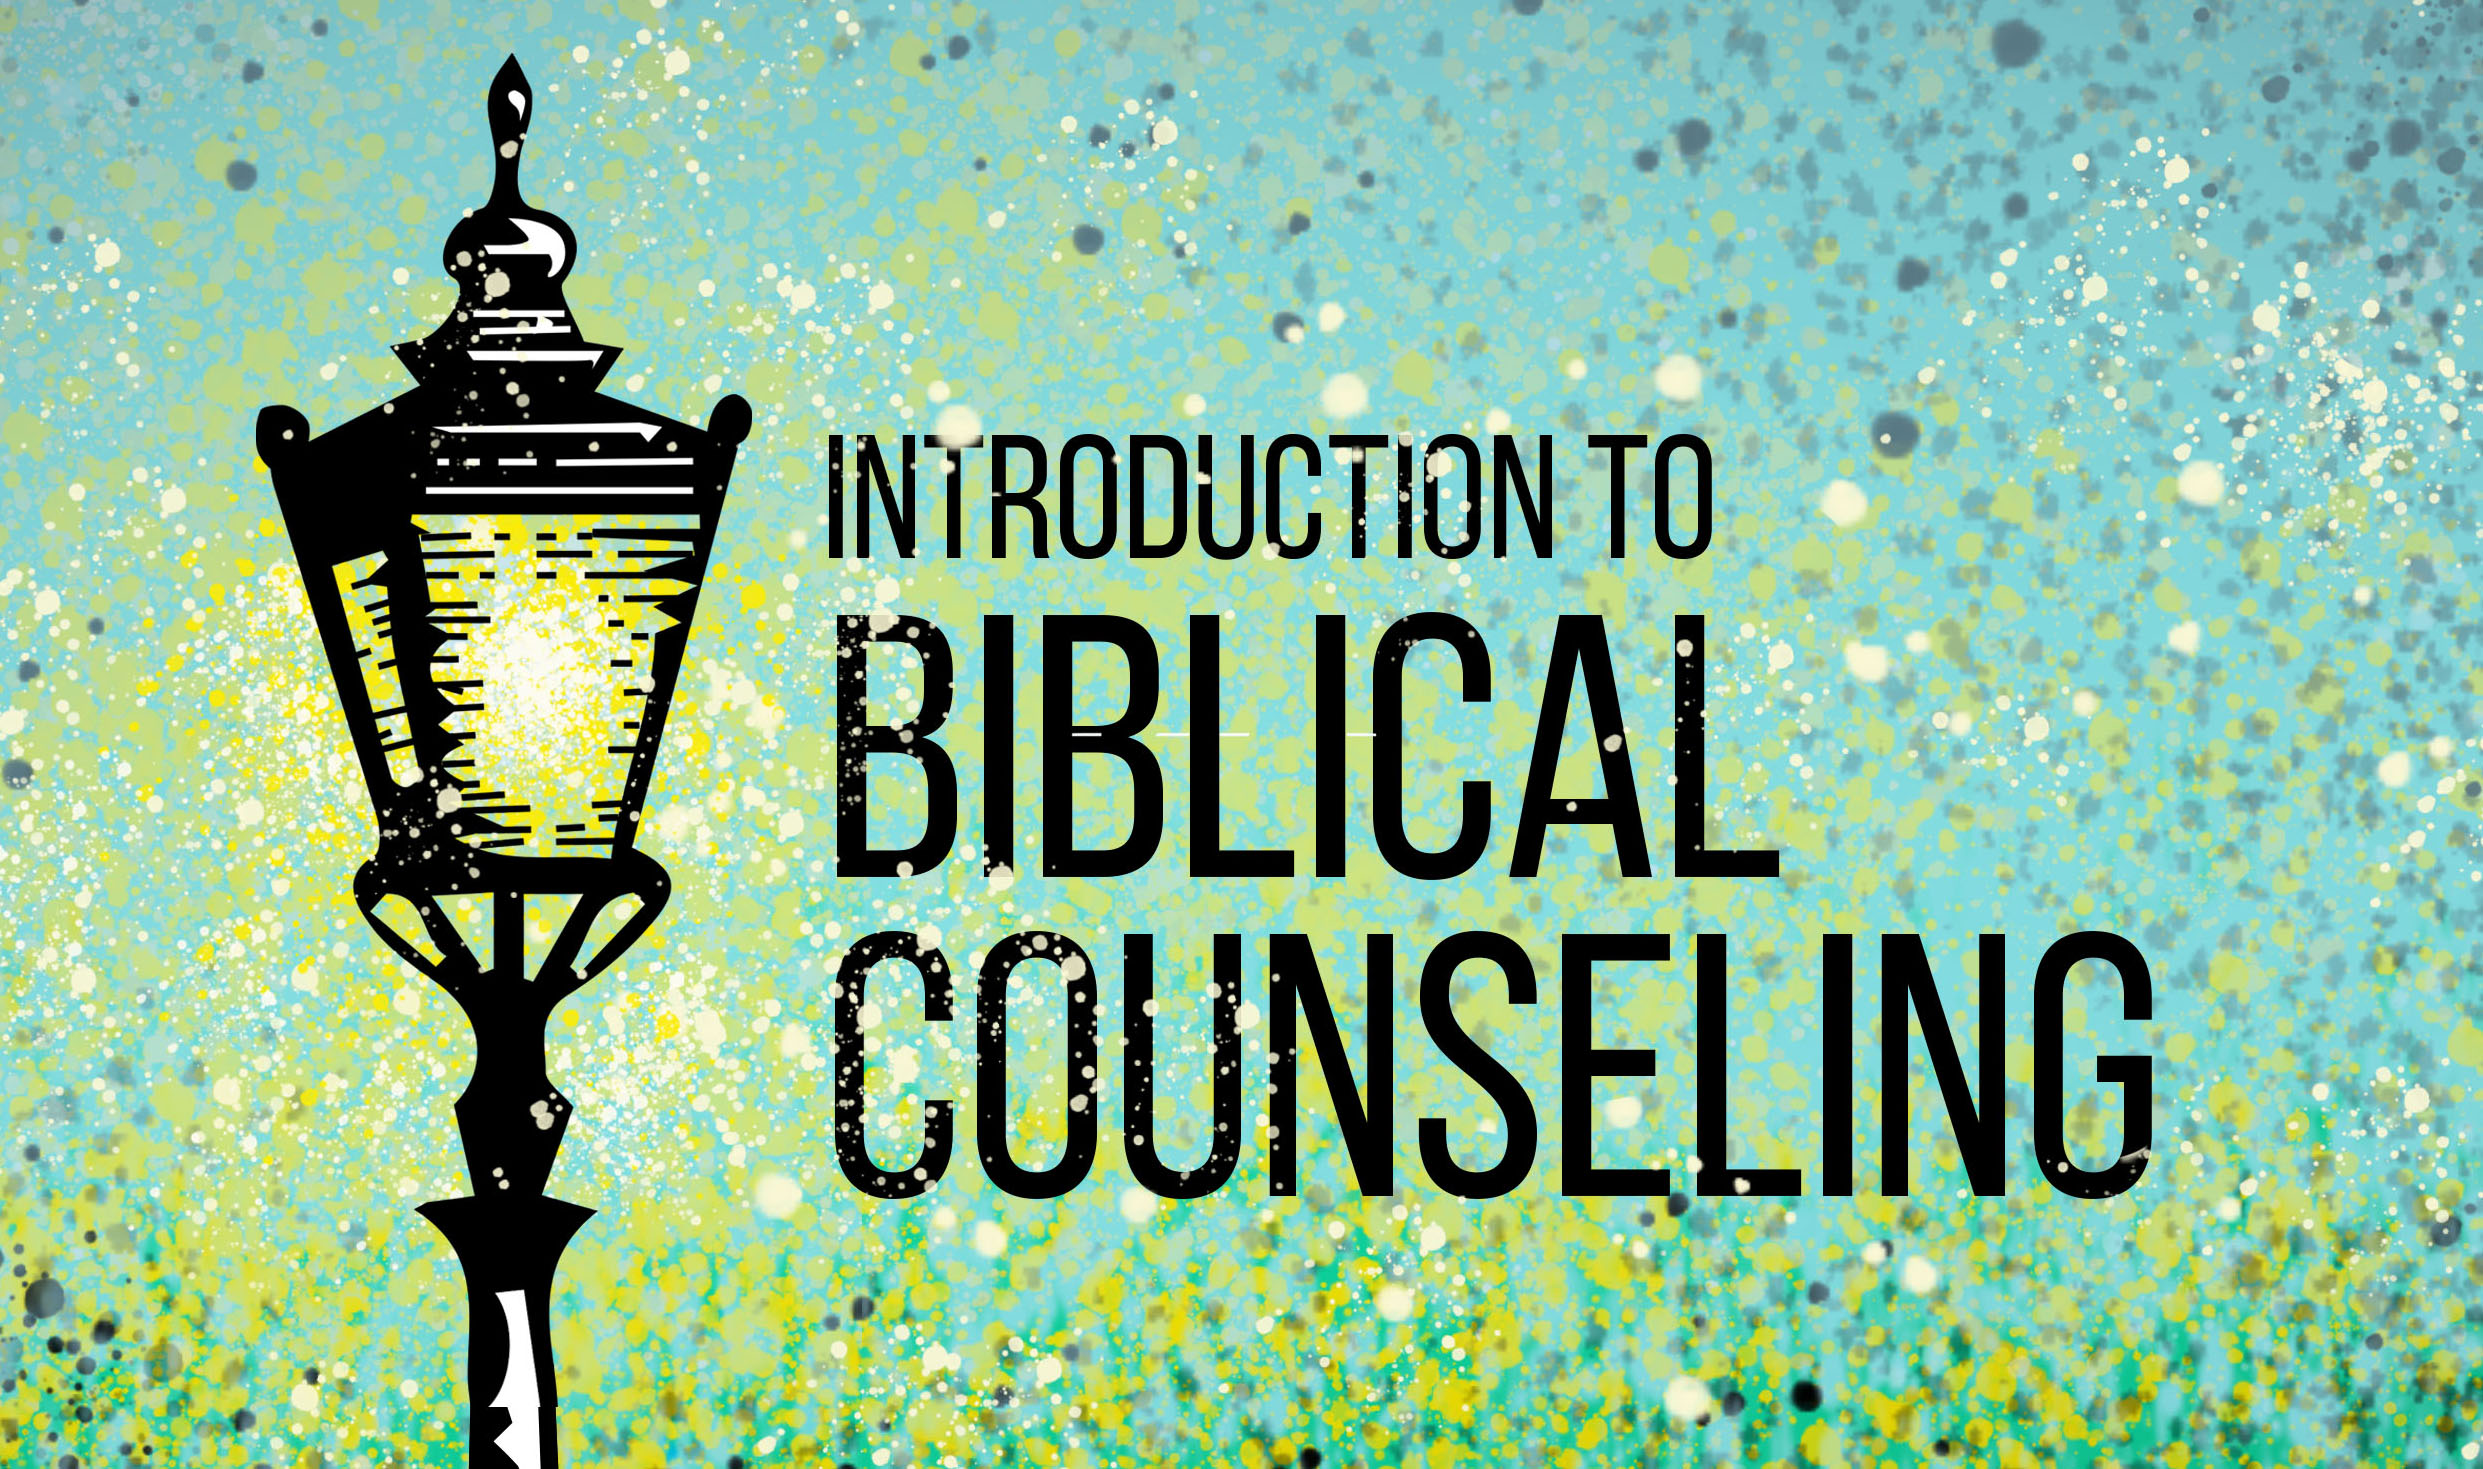 Introduction to Biblical Counseling - Online